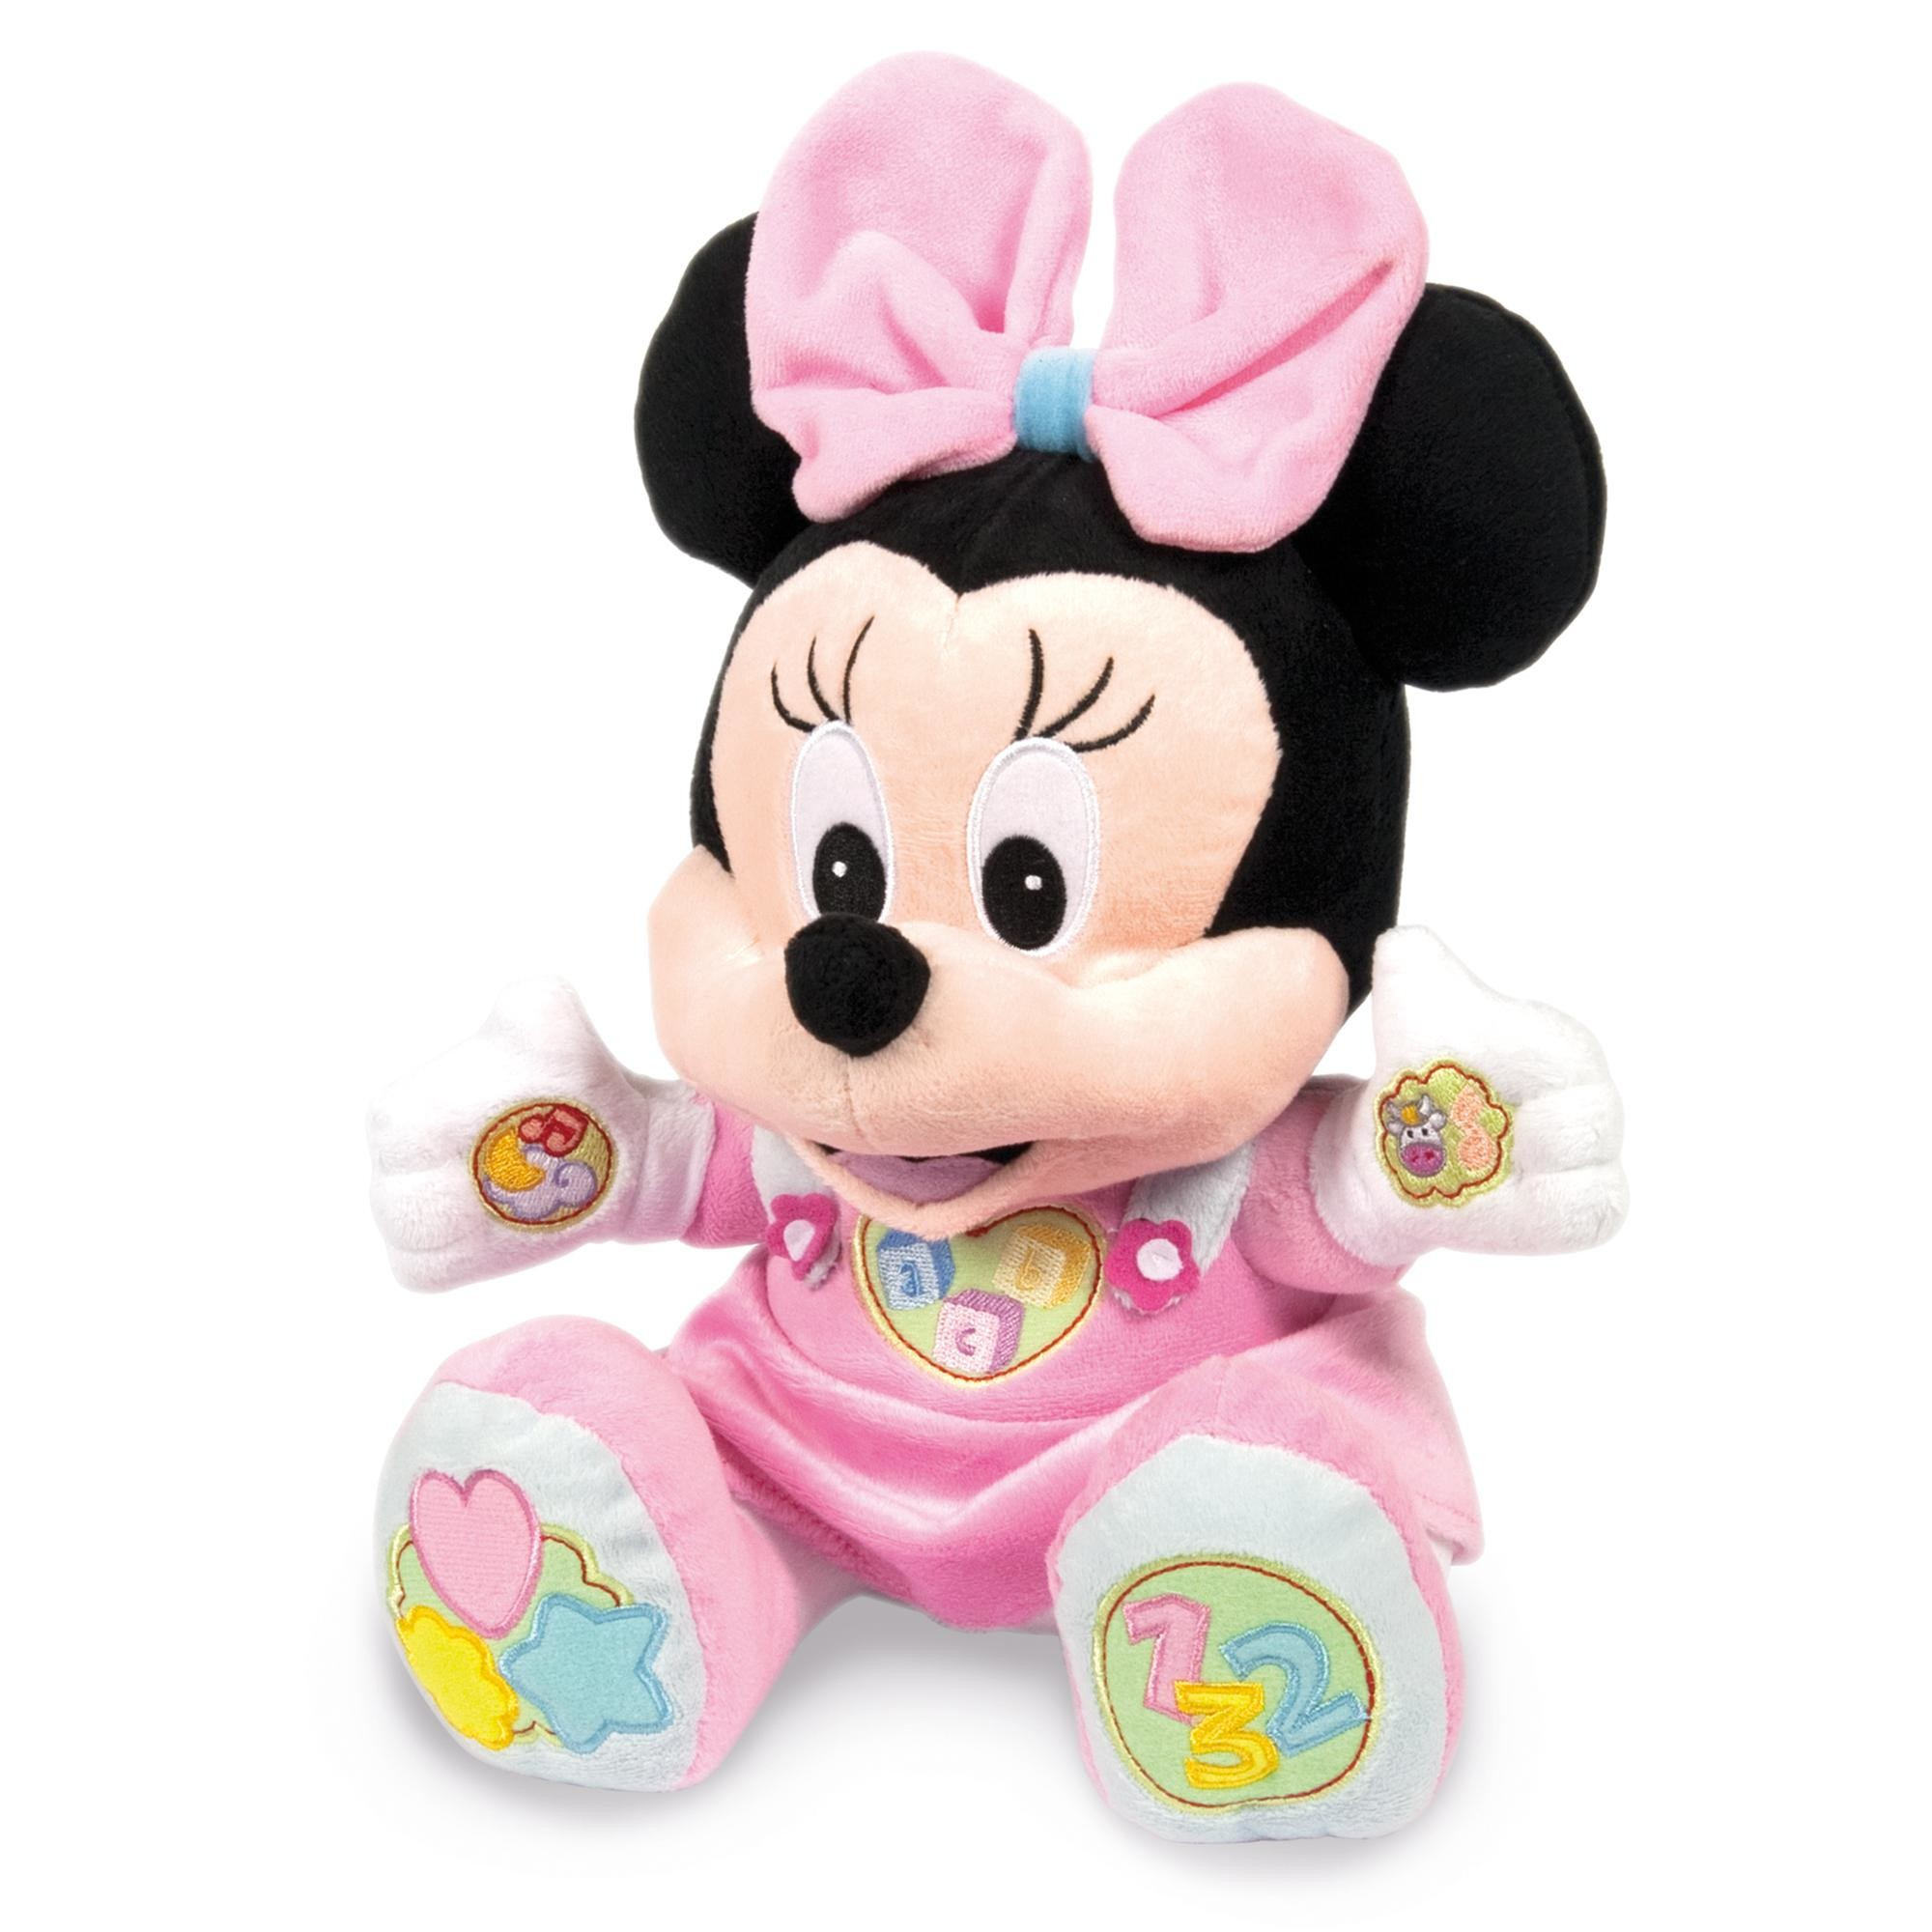 Baby Minnie Mouse Pics Only